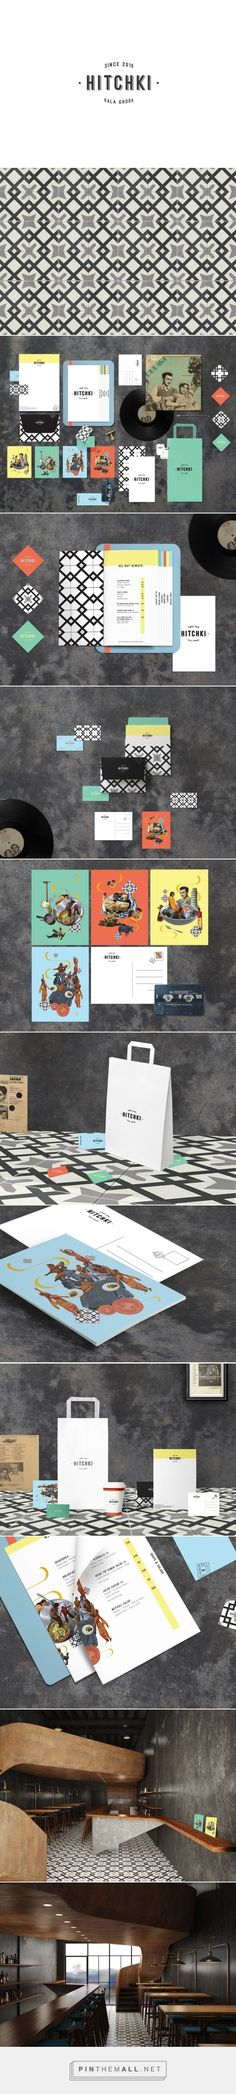 Hitchki Indian Restaurant Branding and Menu Design by Manu Ambady Web Design Agency, Brand Identity Design, Graphic Design Branding, Menu Design, Corporate Design, Packaging Design, Pizza Branding, Restaurant Identity, Restaurant Design